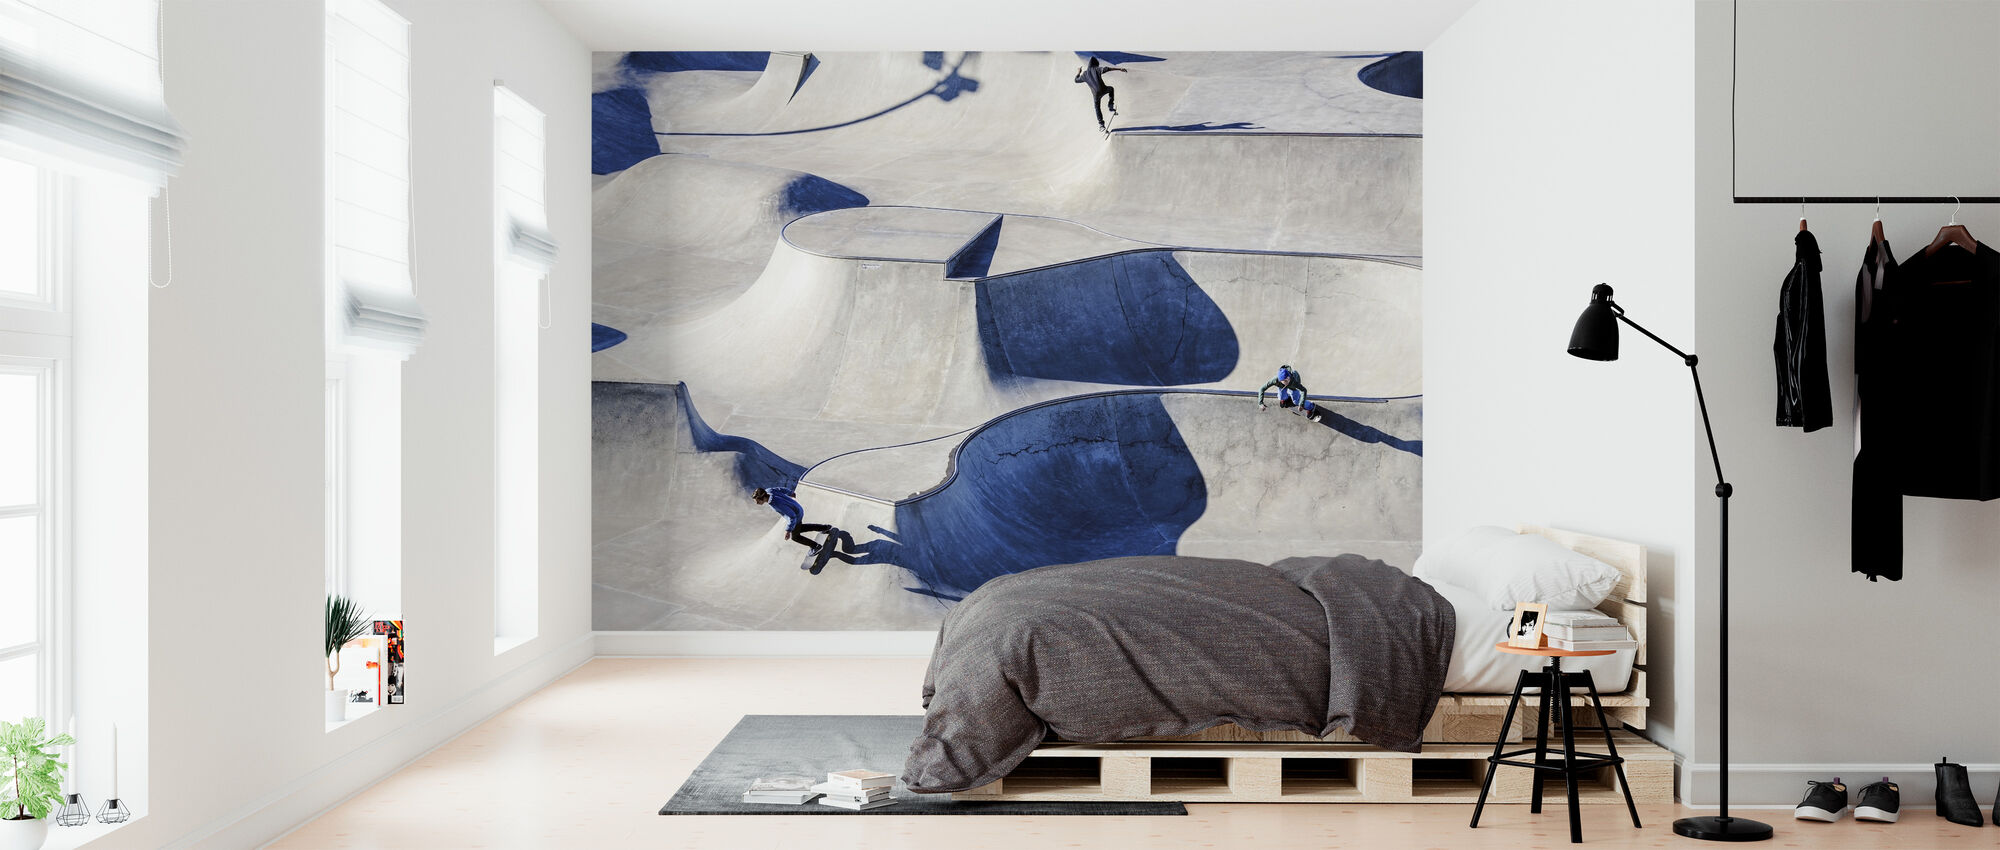 Skateboarding in Park - Wallpaper - Bedroom